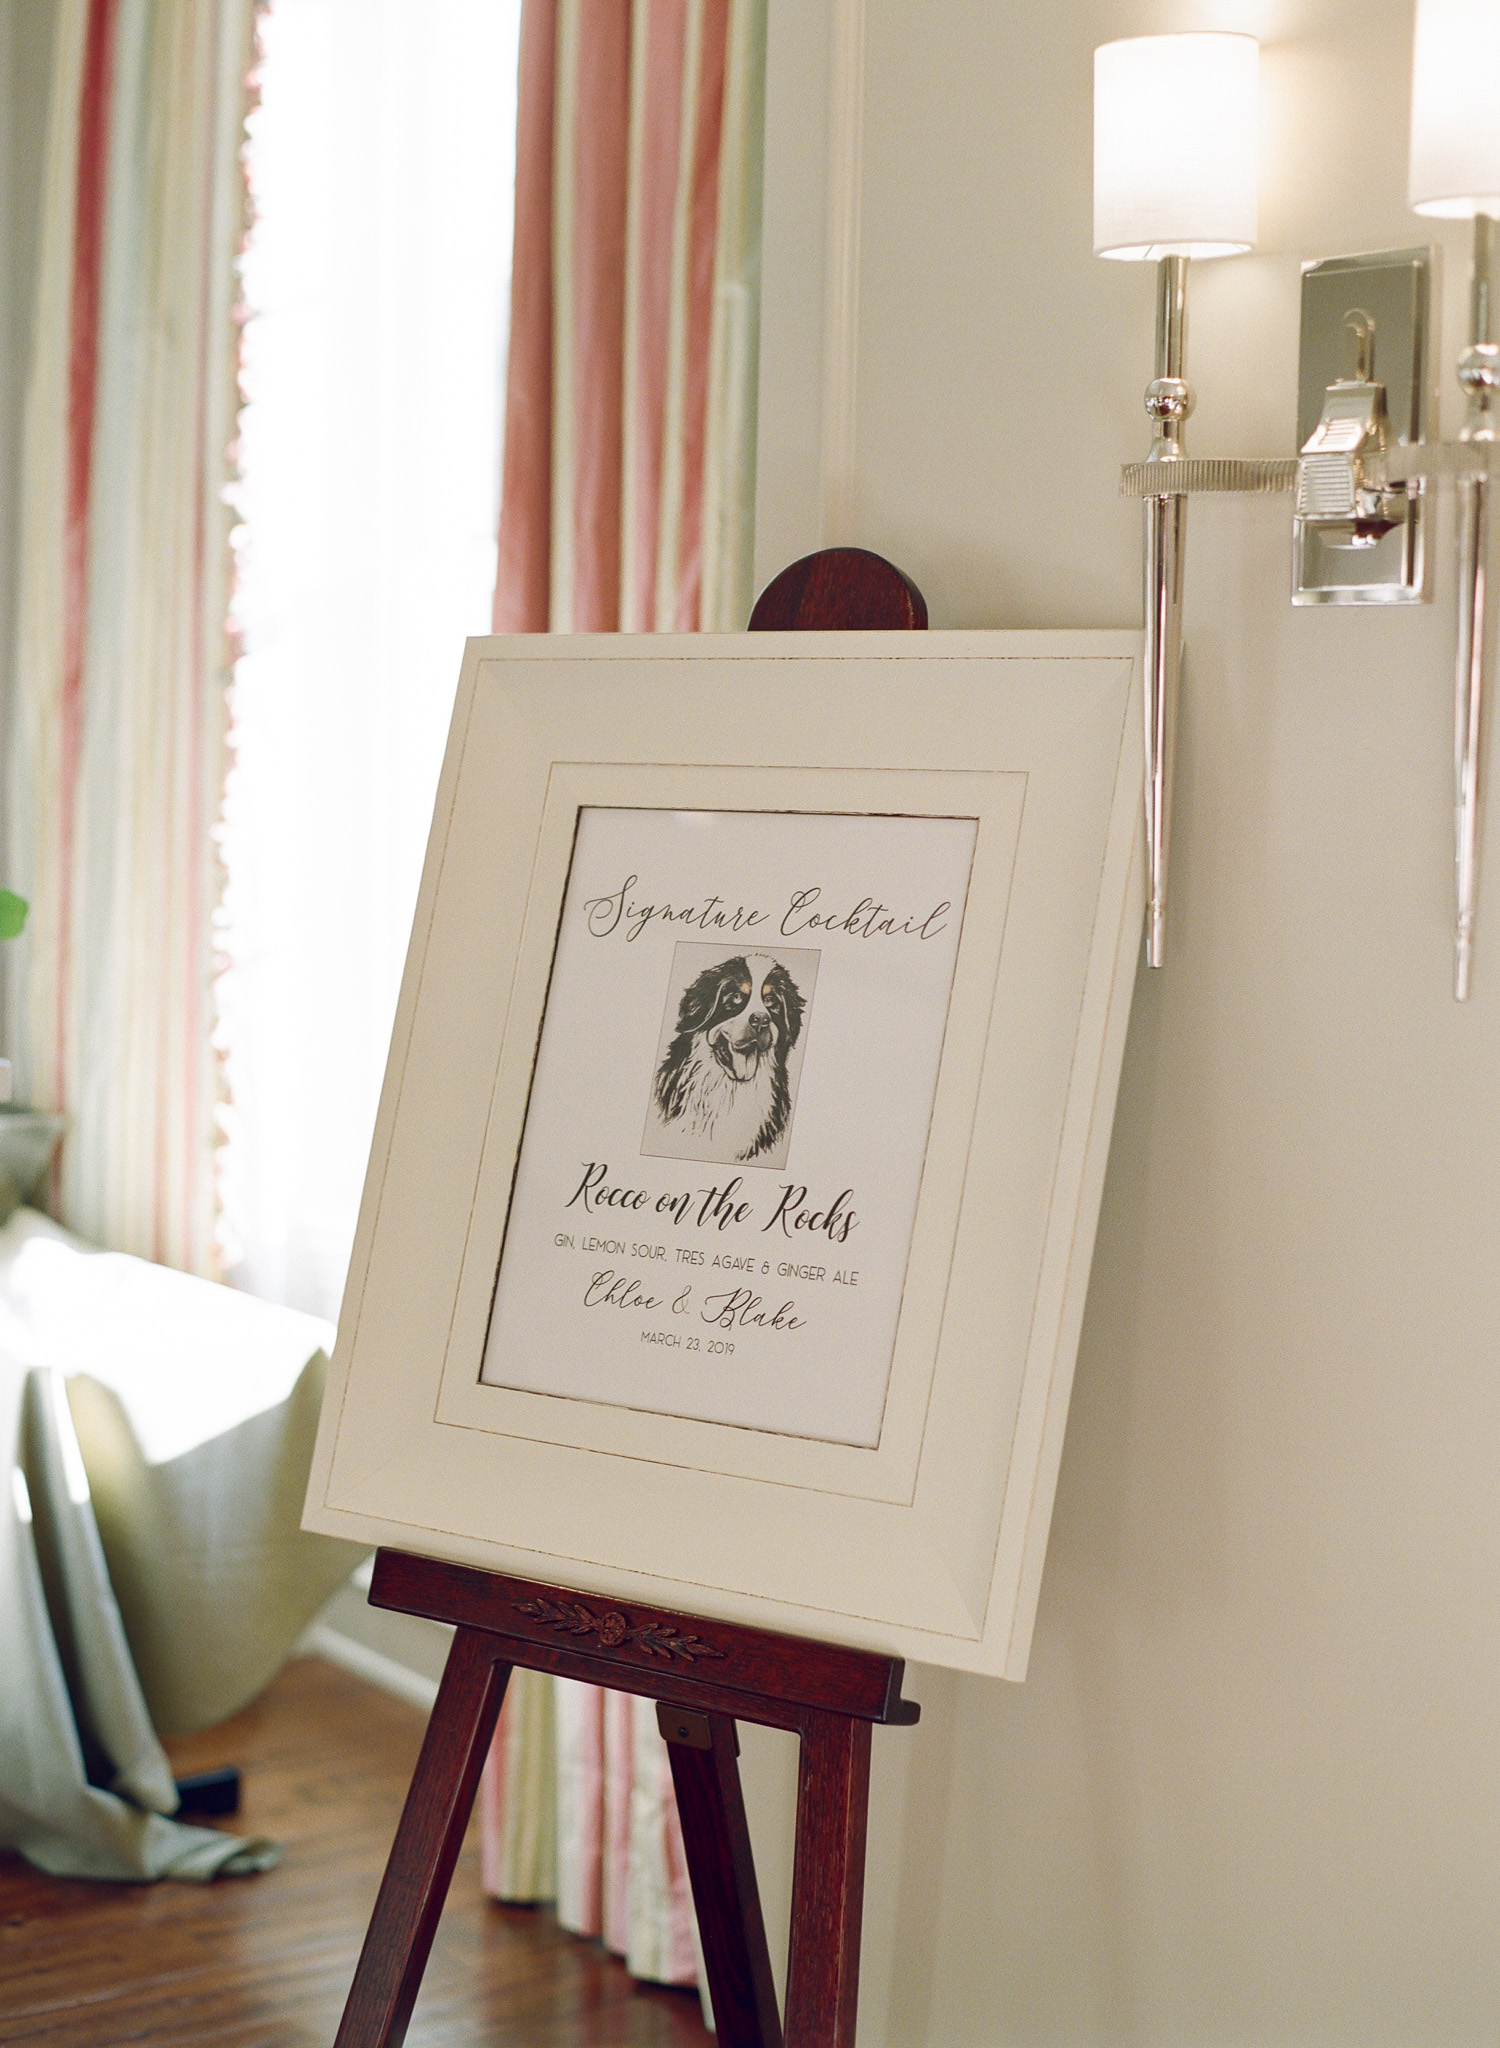 Charleston-Wedding-Hotel-Bennett-105.jpg